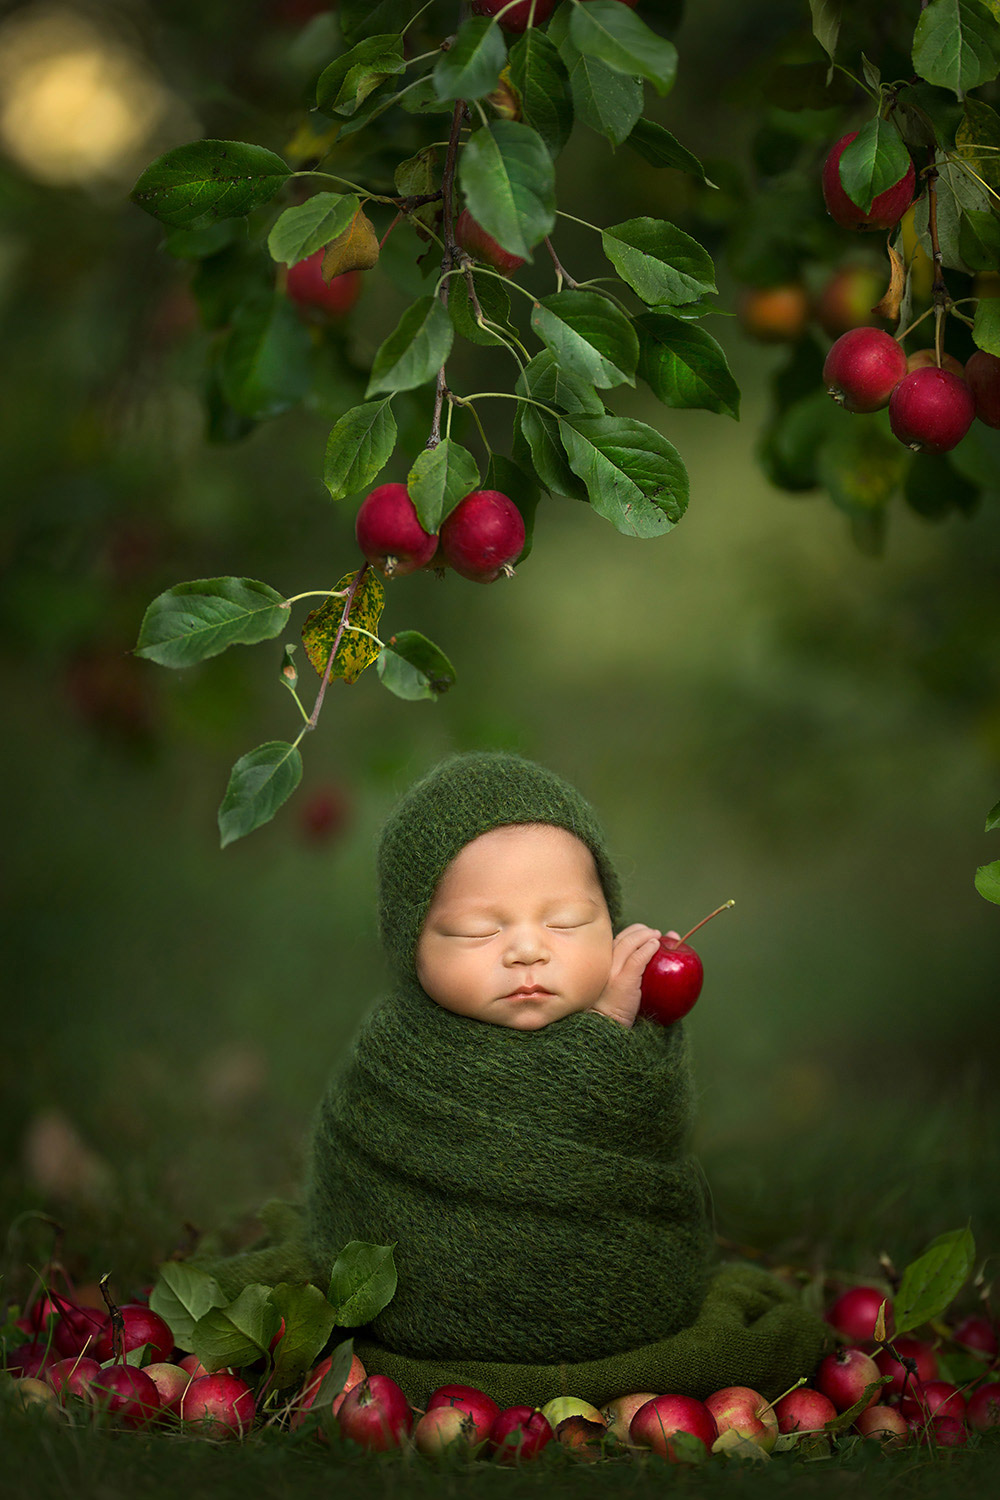 Apple Dumpling, © Cassandra Jones, Canada, Newborns Photo Contest